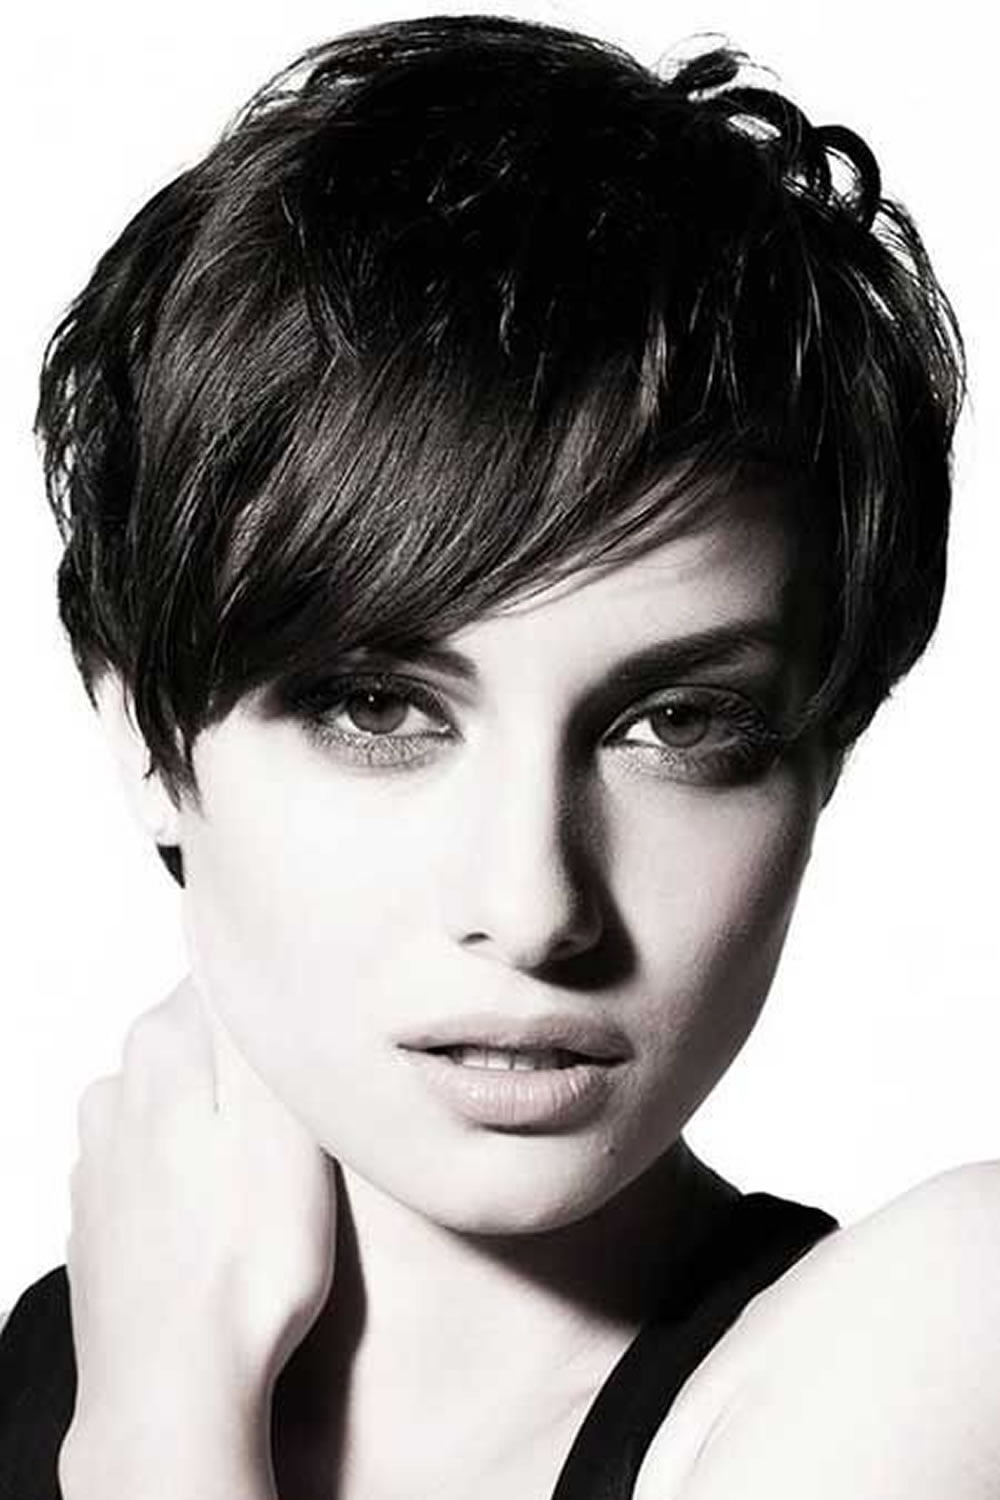 Pixie Or Short Hairstyle Images 2018 Amp Short Hair Cut